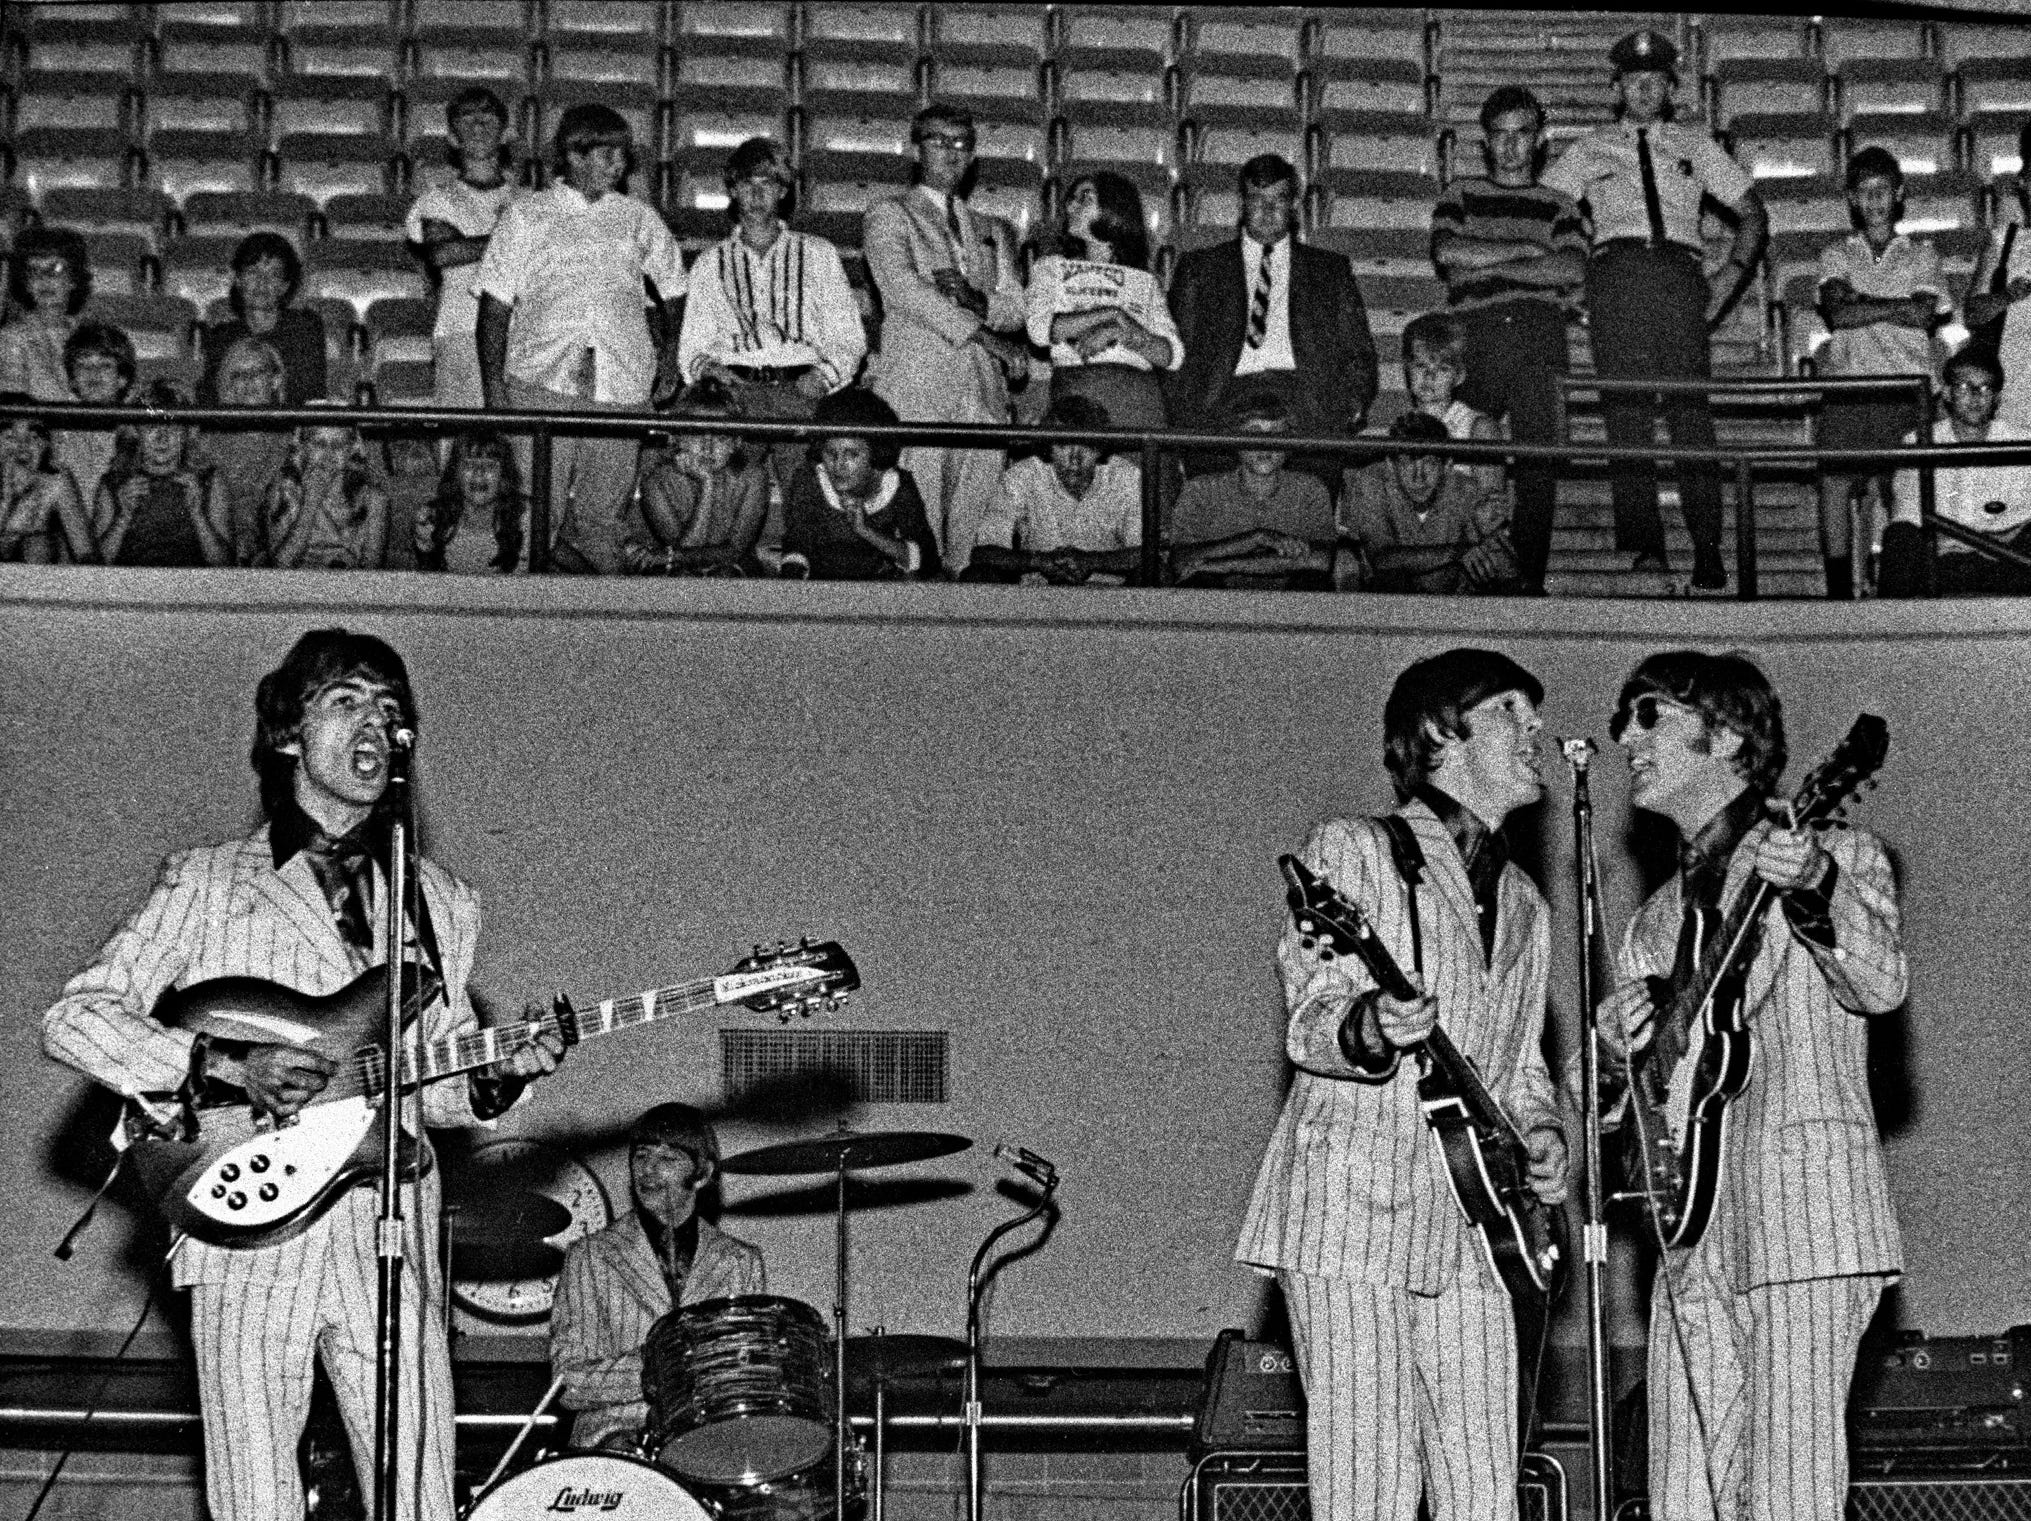 "The Beatles performed at 4 and 8:30 p.m. at the Mid-South Coliseum in Memphis, Friday, August 19, 1966. The Commercial Appeal reported that 20,128 people ""heard the Liverpudlians bow to Dixie."" A total of 7,589 attended the afternoon show and 12,539 showed up at the evening concert. The Cyrkle, Bobby Hebb, The Ronettes and The Remains also were on the bill. Tickets cost $5.50. According to the newspaper, the Beatles - John Lennon, Paul McCartney, George Harrison and Ringo Starr - wore ""modish-dull gray suits"" for the afternoon show and ""dark green creations with chartreuse shirts"" for the evening concert. A chain link fence surrounded the stage. Across town, a crowd of more than 8,000 filled the Auditorium North Hall and part of the South Hall for the Memphis Christian Youth Rally. This was provoked by Lennon's statement that the Beatles were more popular than Jesus Christ. ( By Robert Williams / The Commercial Appeal)"